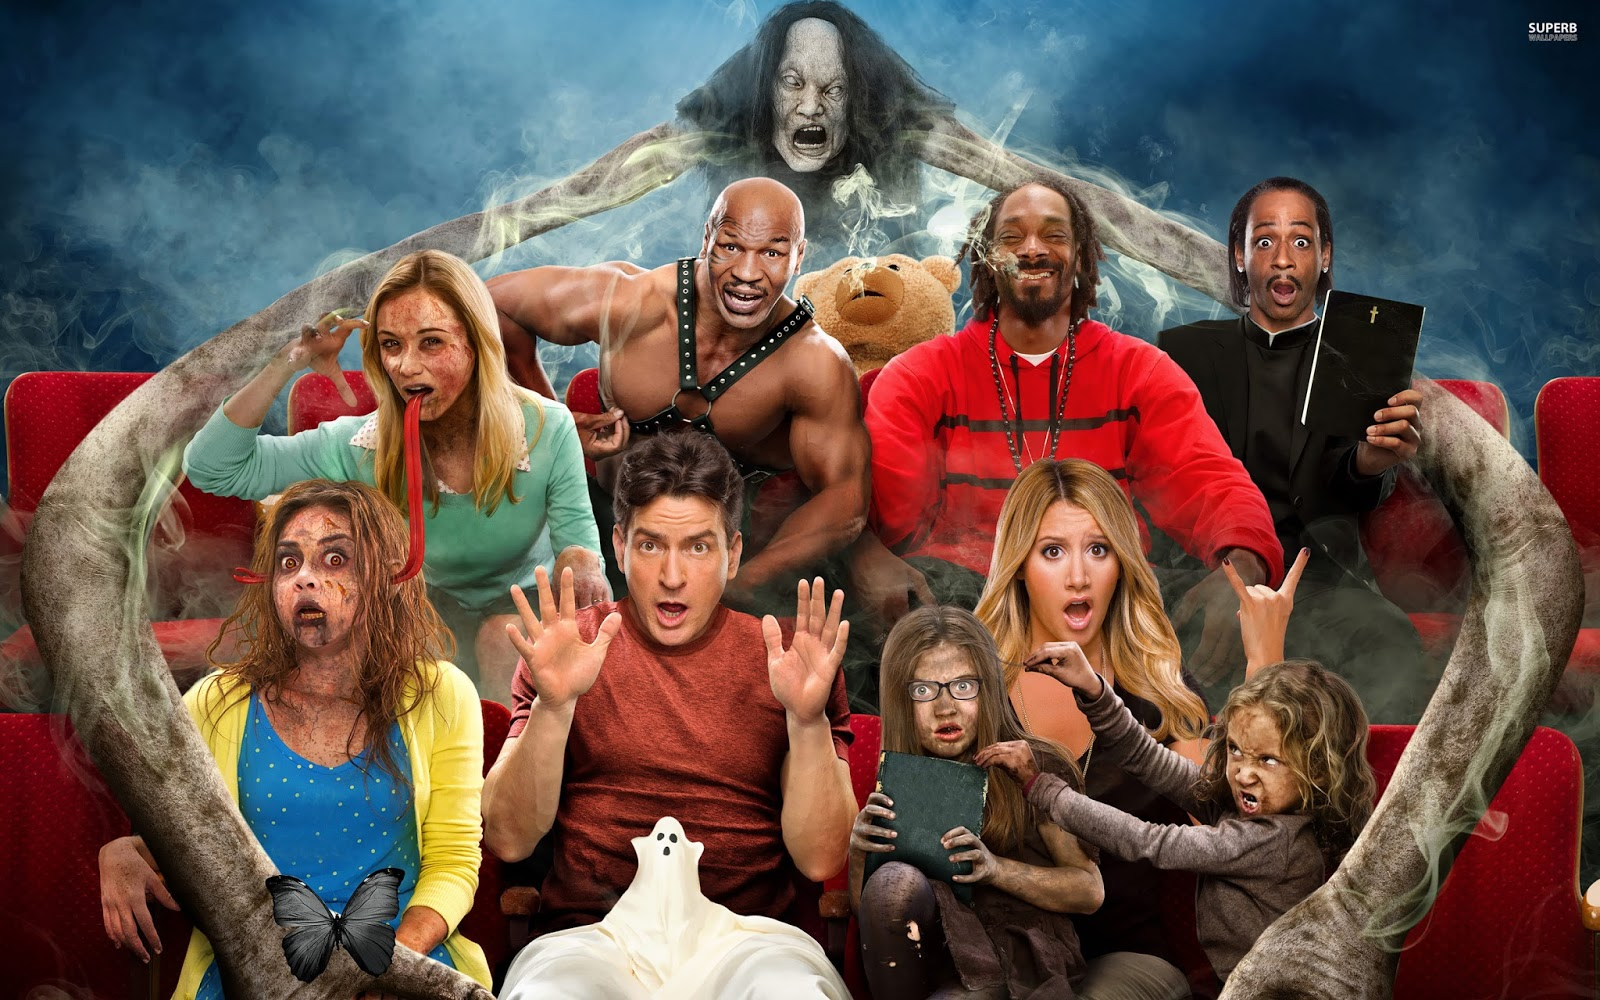 Scary movie collection 2000 2013 tainies for you - Scary movie 5 wallpaper ...